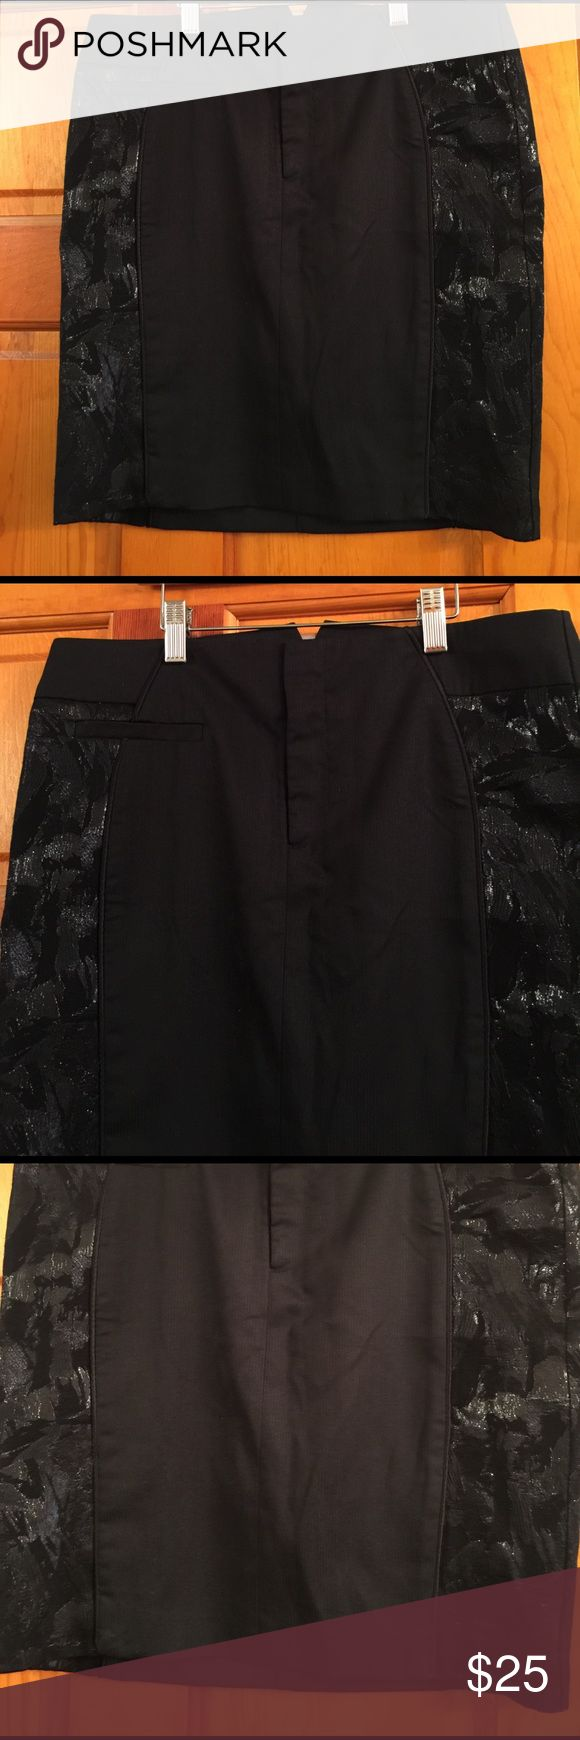 """BCBGeneration CURVE Skirt, SZ 8, NWT, Black BCBGeneration CURVE SKIRT, Size 8, New with Tags. KSR3B852-001. Fully lined. 72% polyester, 24% rayon, 4% spandex. Contrast: 58% polyester, 30% rayon and 12% metallic. Lining:100% acetate. Black on black very thin pinstripes, front center hooks and zipper, 2 back decorative pockets. 16"""" waist, 18"""" total length, 19"""" hips. BCBGeneration Skirts Mini"""